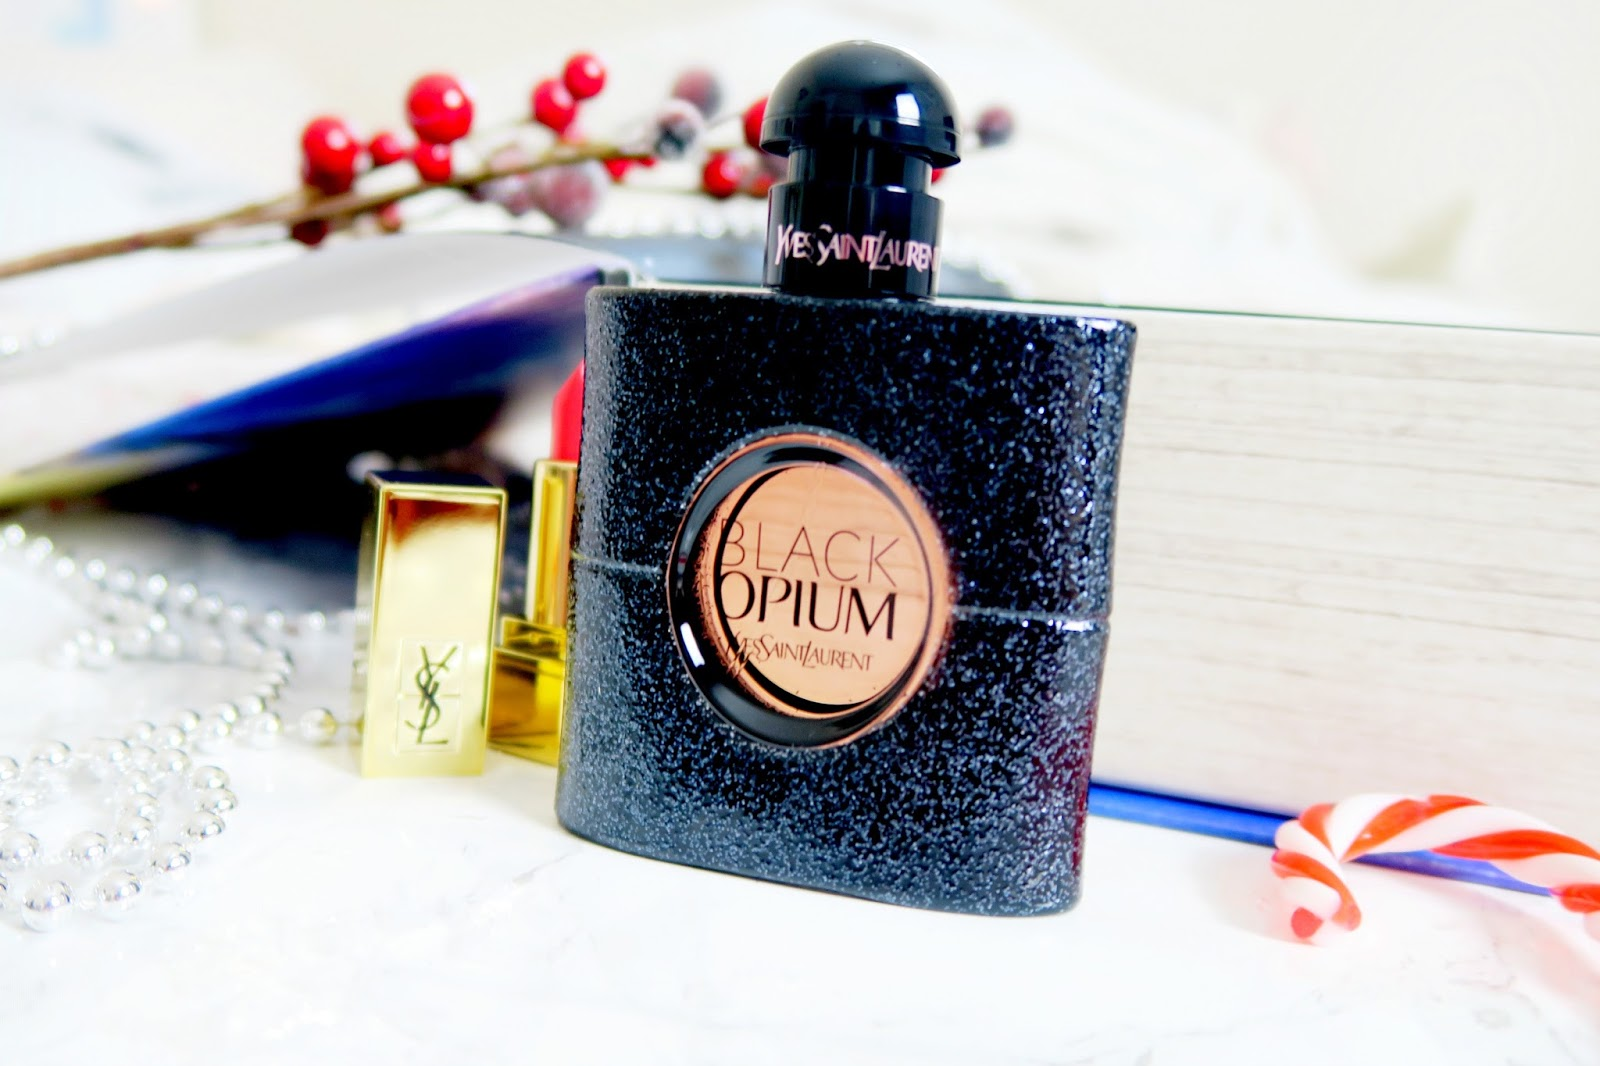 an image of xmas Yves Saint Laurent Black Opium